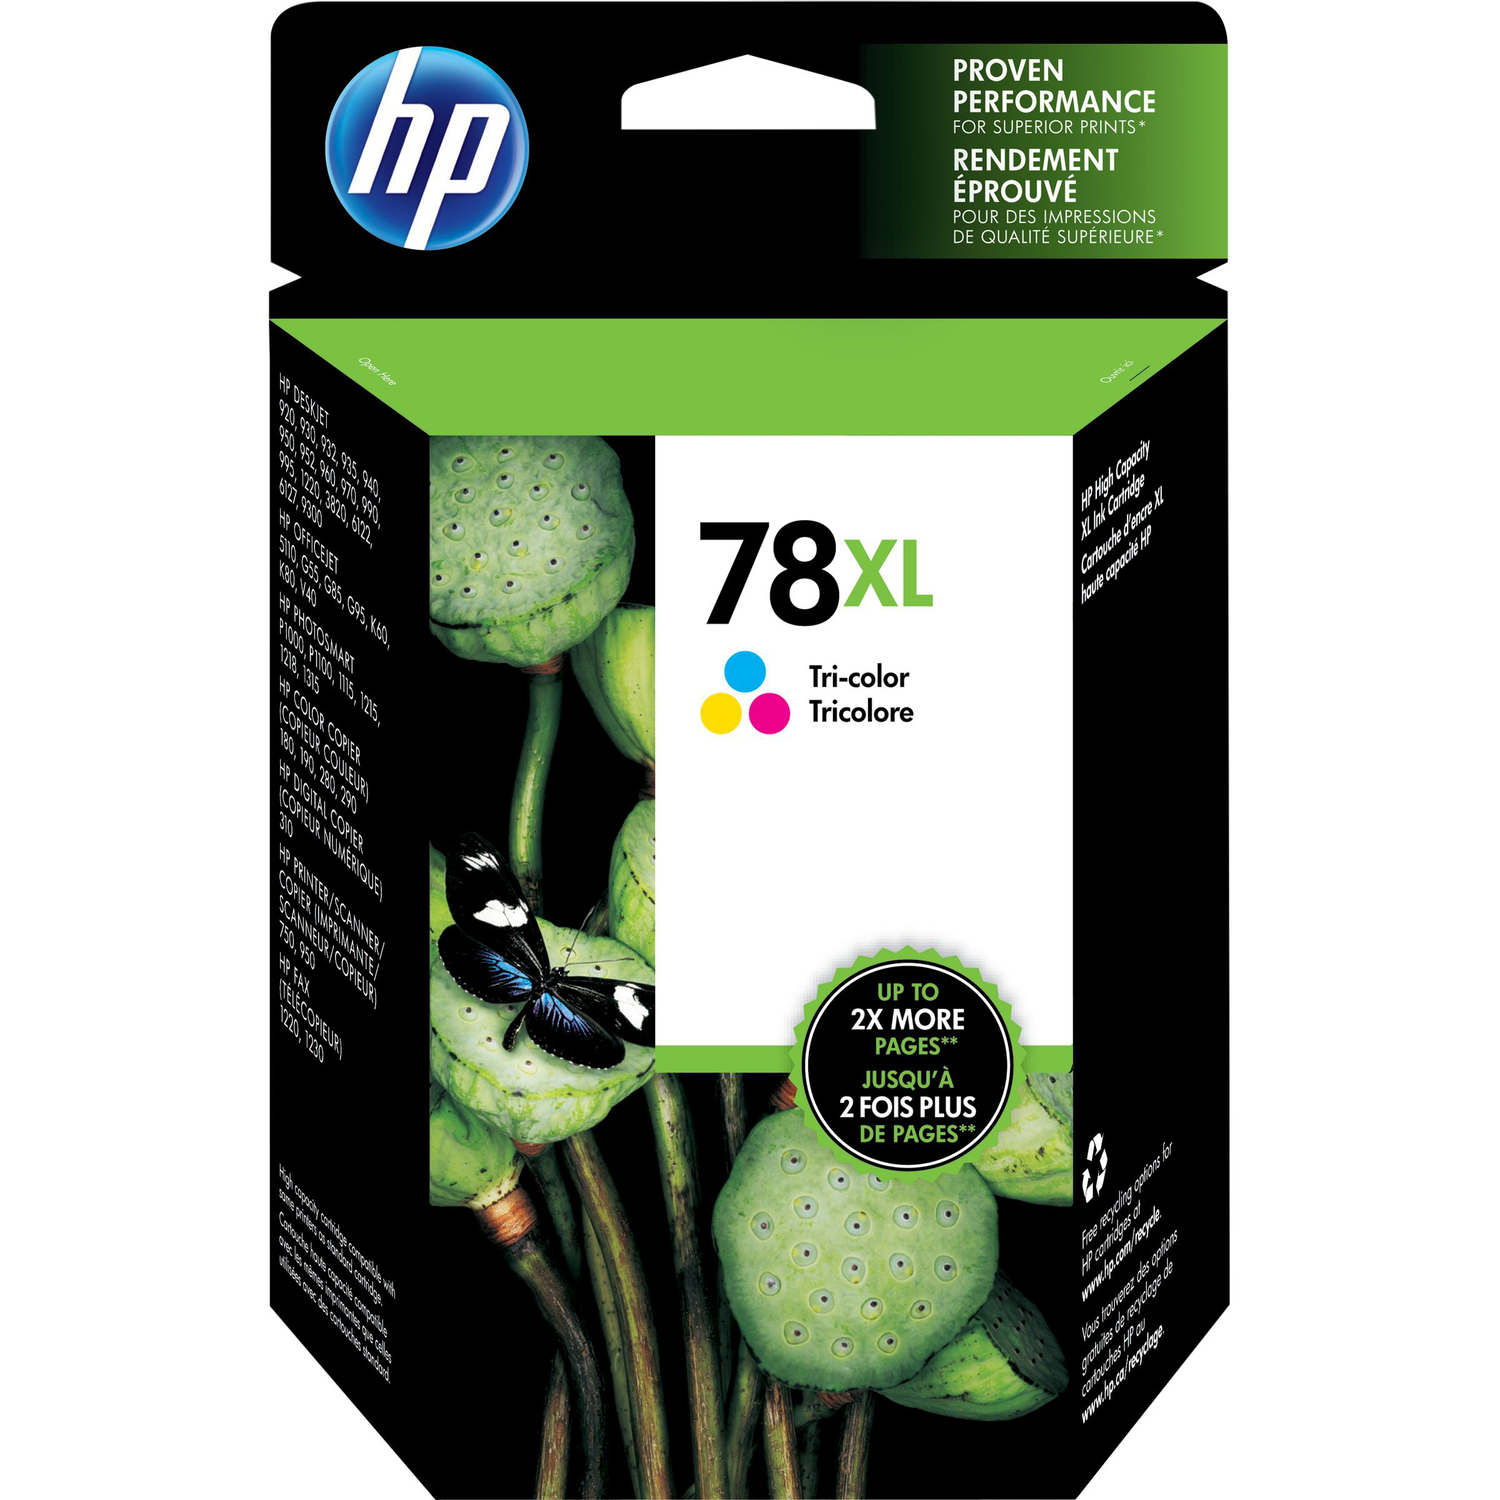 HP No. 78 Ink Cartridge - Cyan, Magenta, Yellow